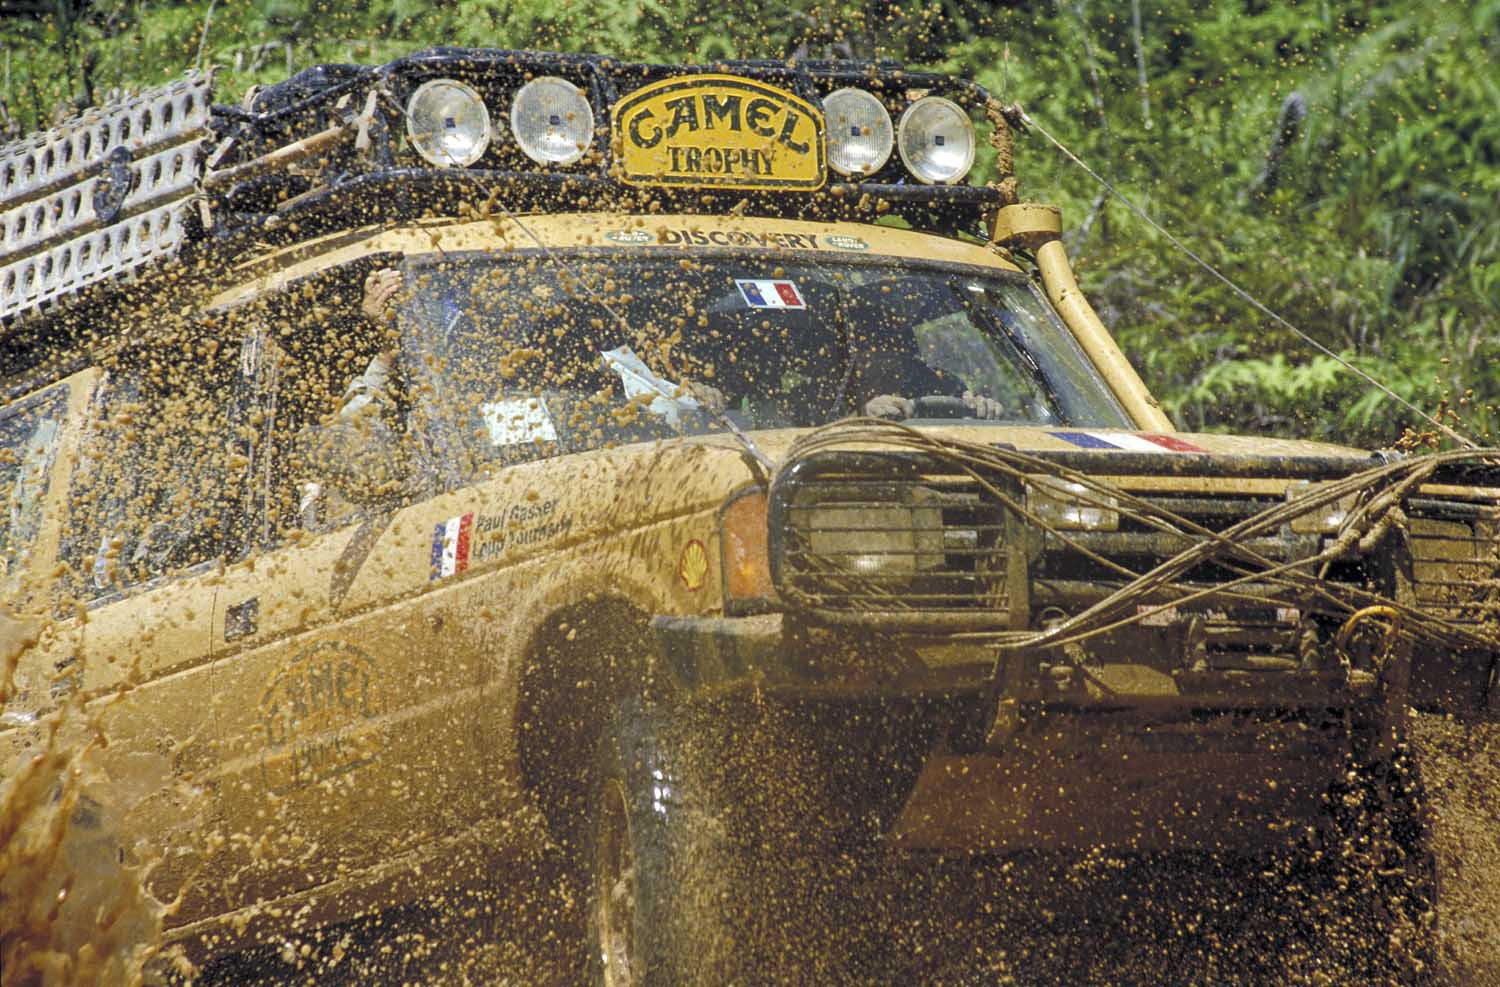 Return to Camel Trophy 028